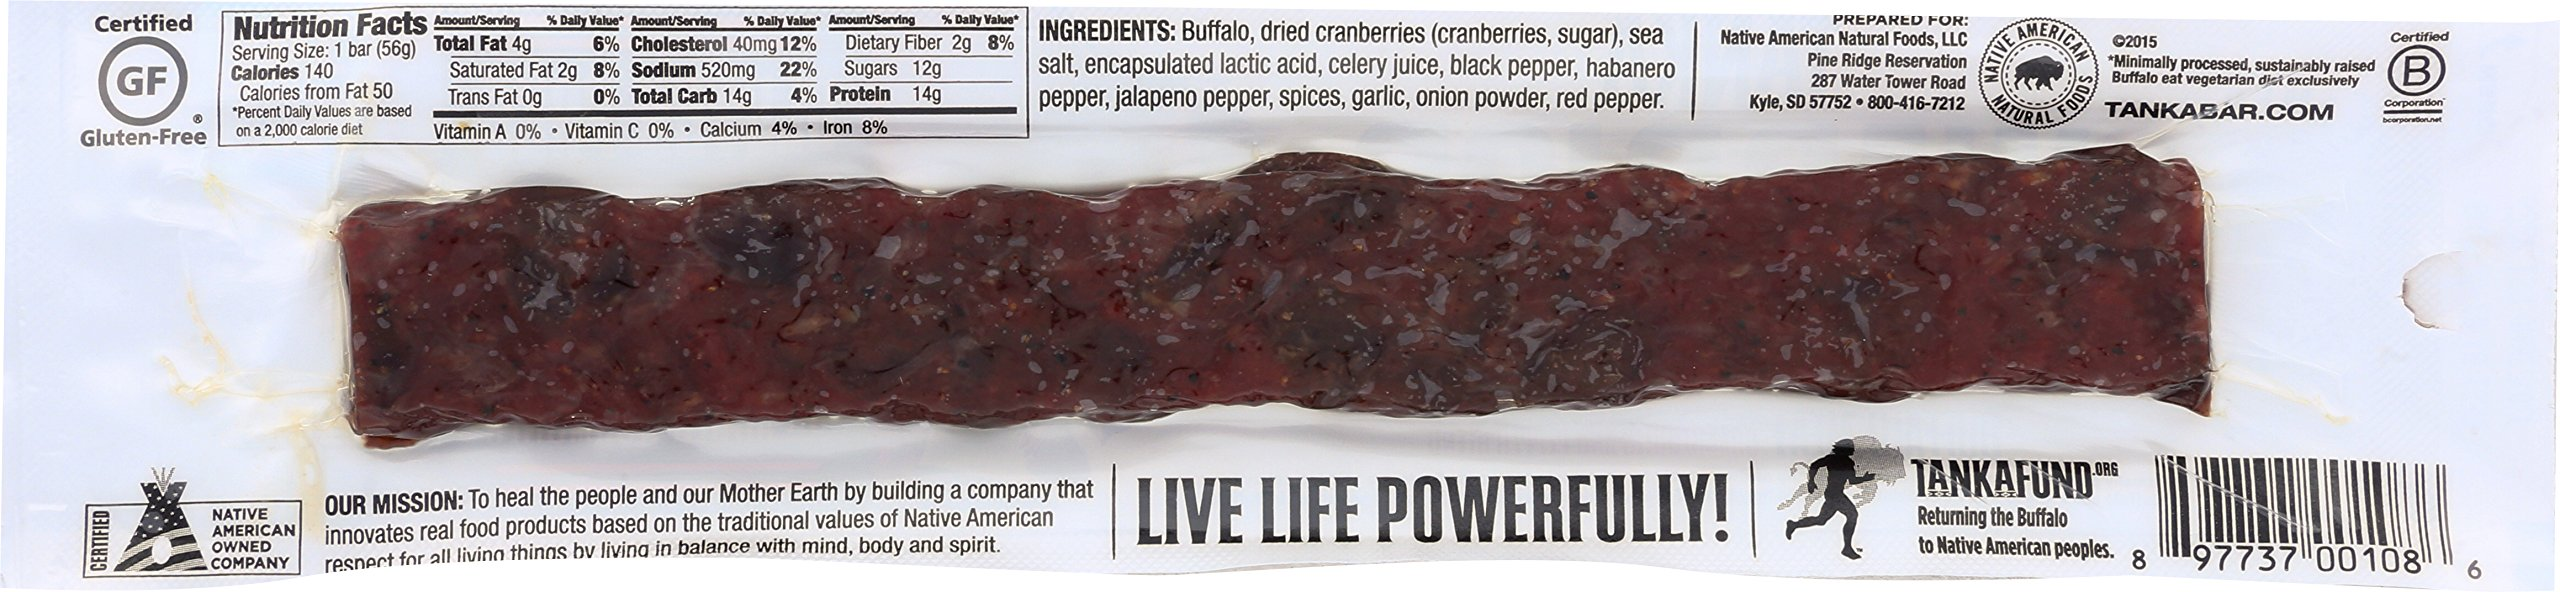 Bison Pemmican Meat Bar with Buffalo and Cranberries by Tanka, Gluten Free, Beef Jerky Alternative, Slow Smoked Original, 2 Ounce Bar, Pack of 12 by Tanka (Image #2)